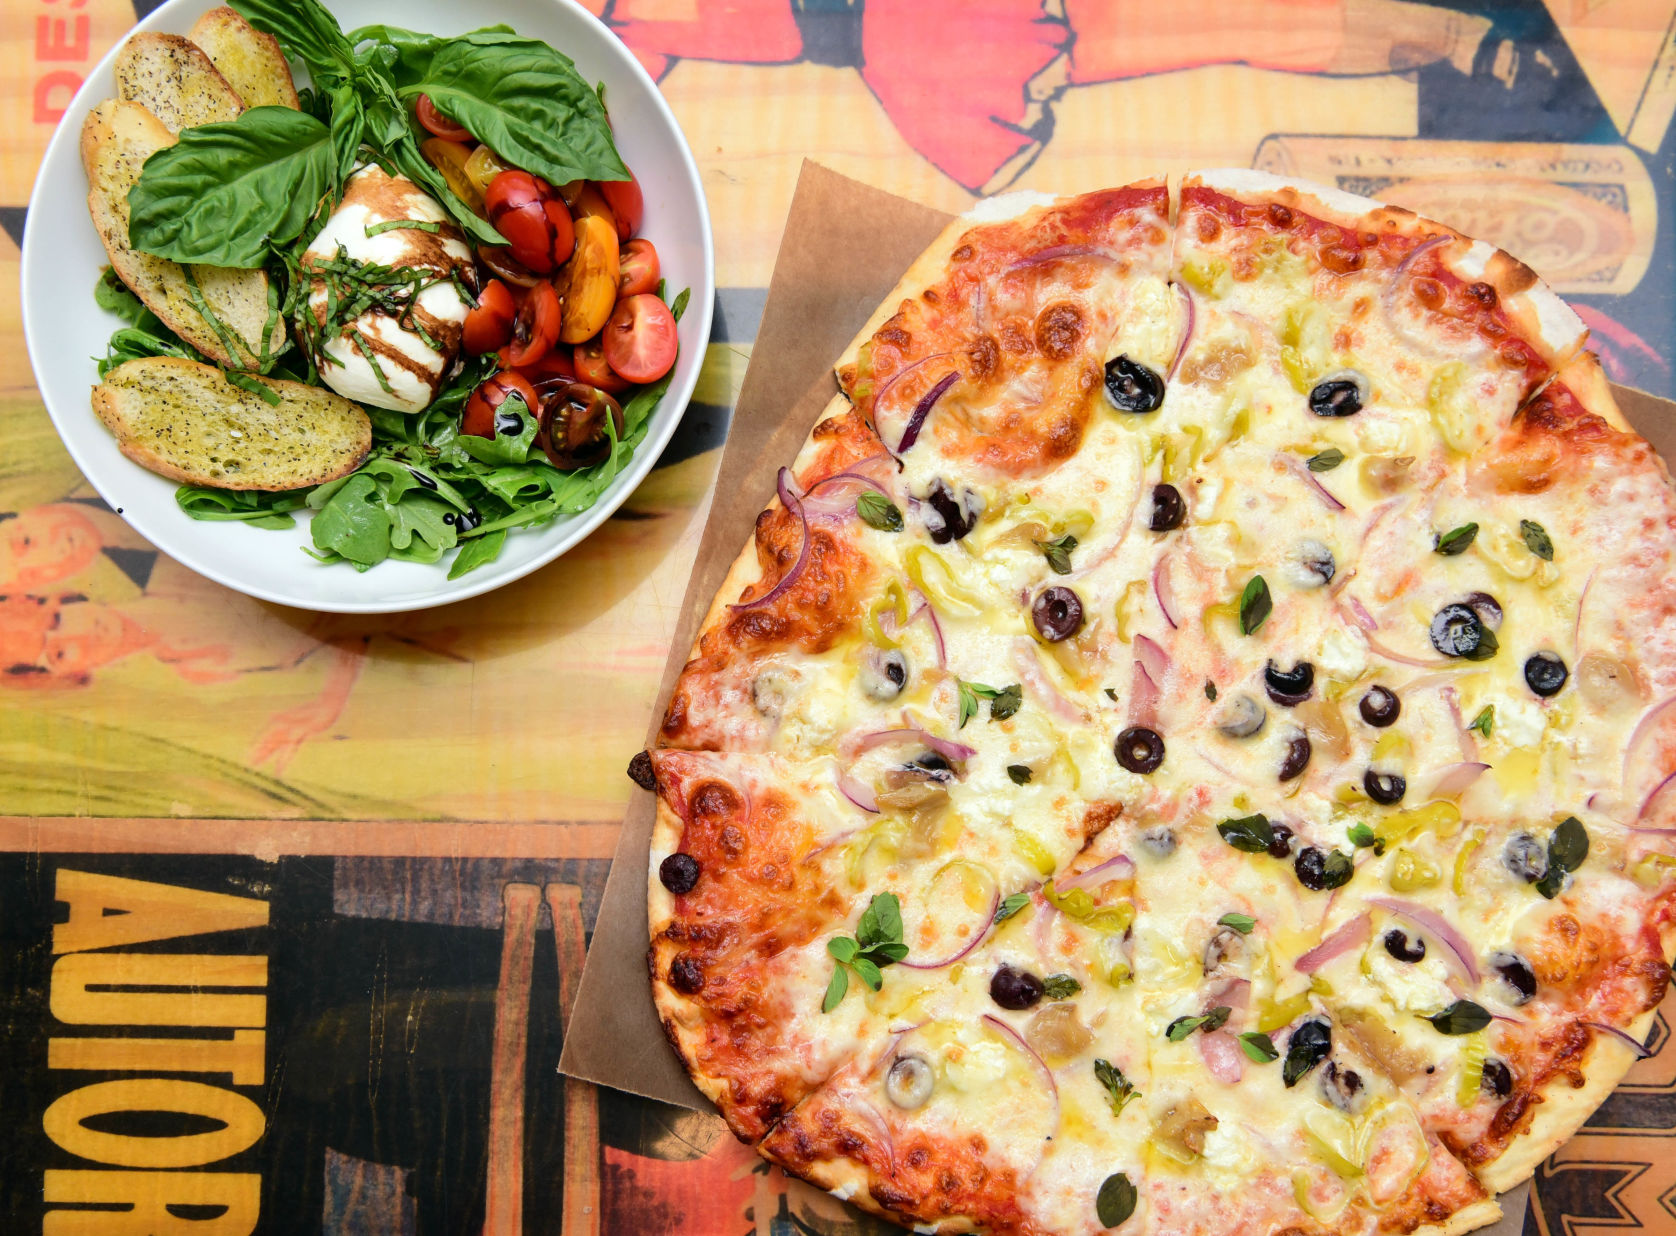 Cucina Pizzeria Blue Ridge Gambit S 2019 Summer Restaurant Guide The Dish On Every New